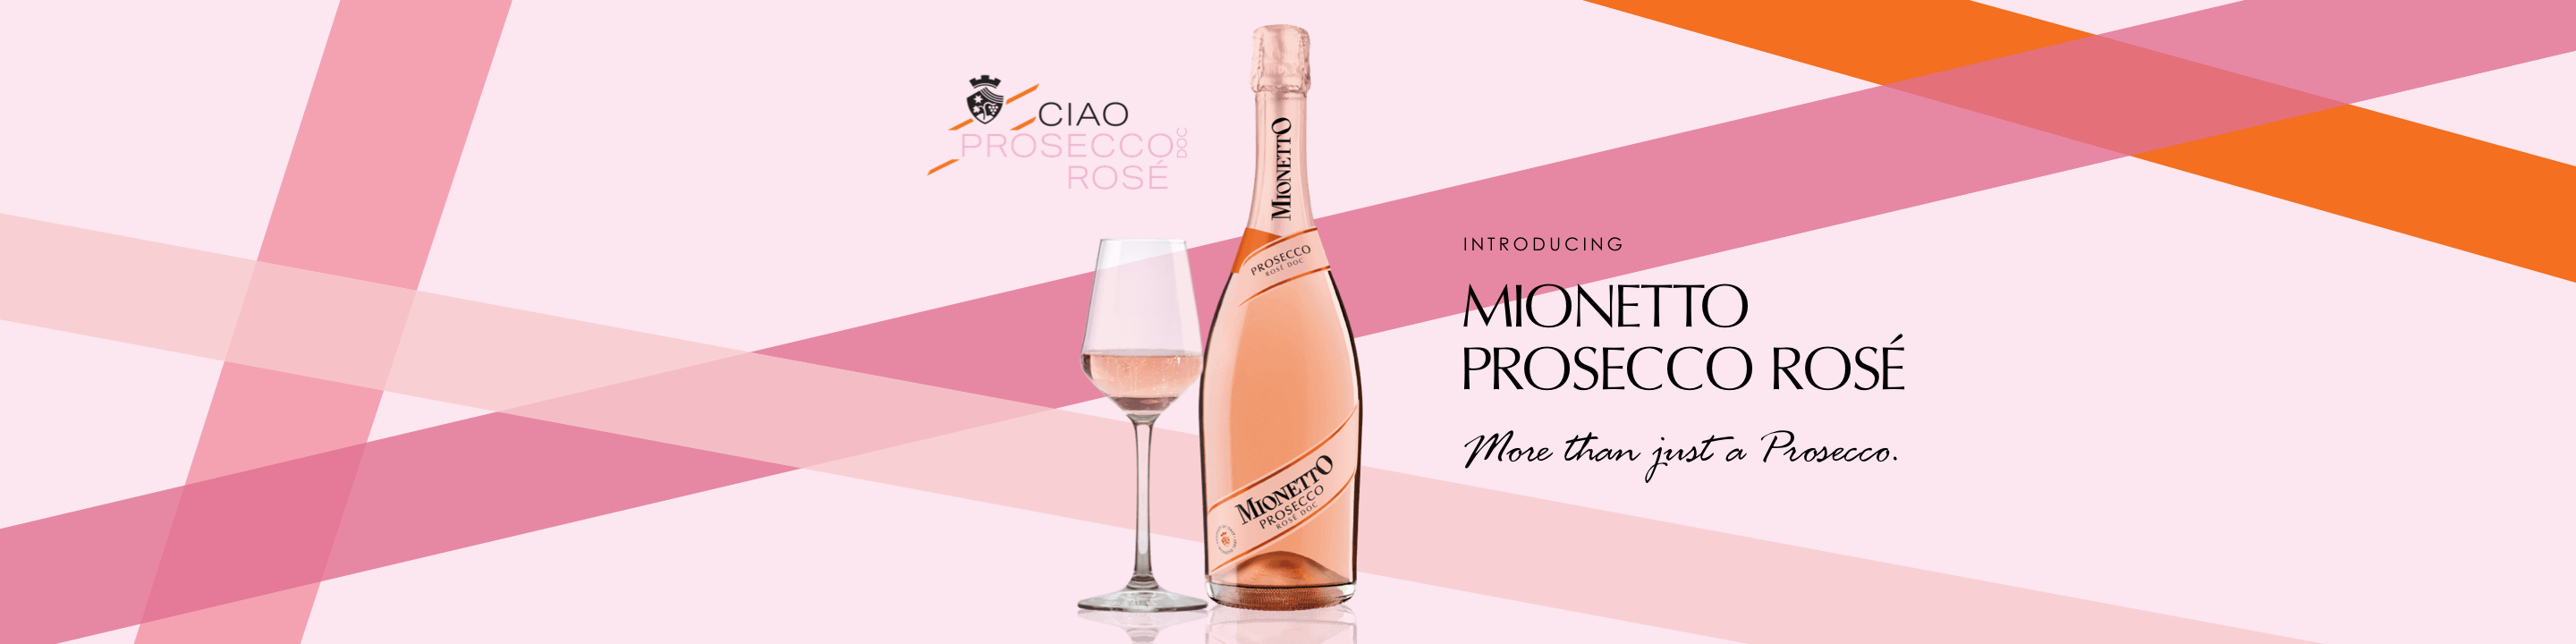 Since 1887, Mionetto has inspired Italians to truly taste the good life.  With its light, crisp and refreshing flavors, Mionetto helps you celebrate all of life's moments, big or small. 